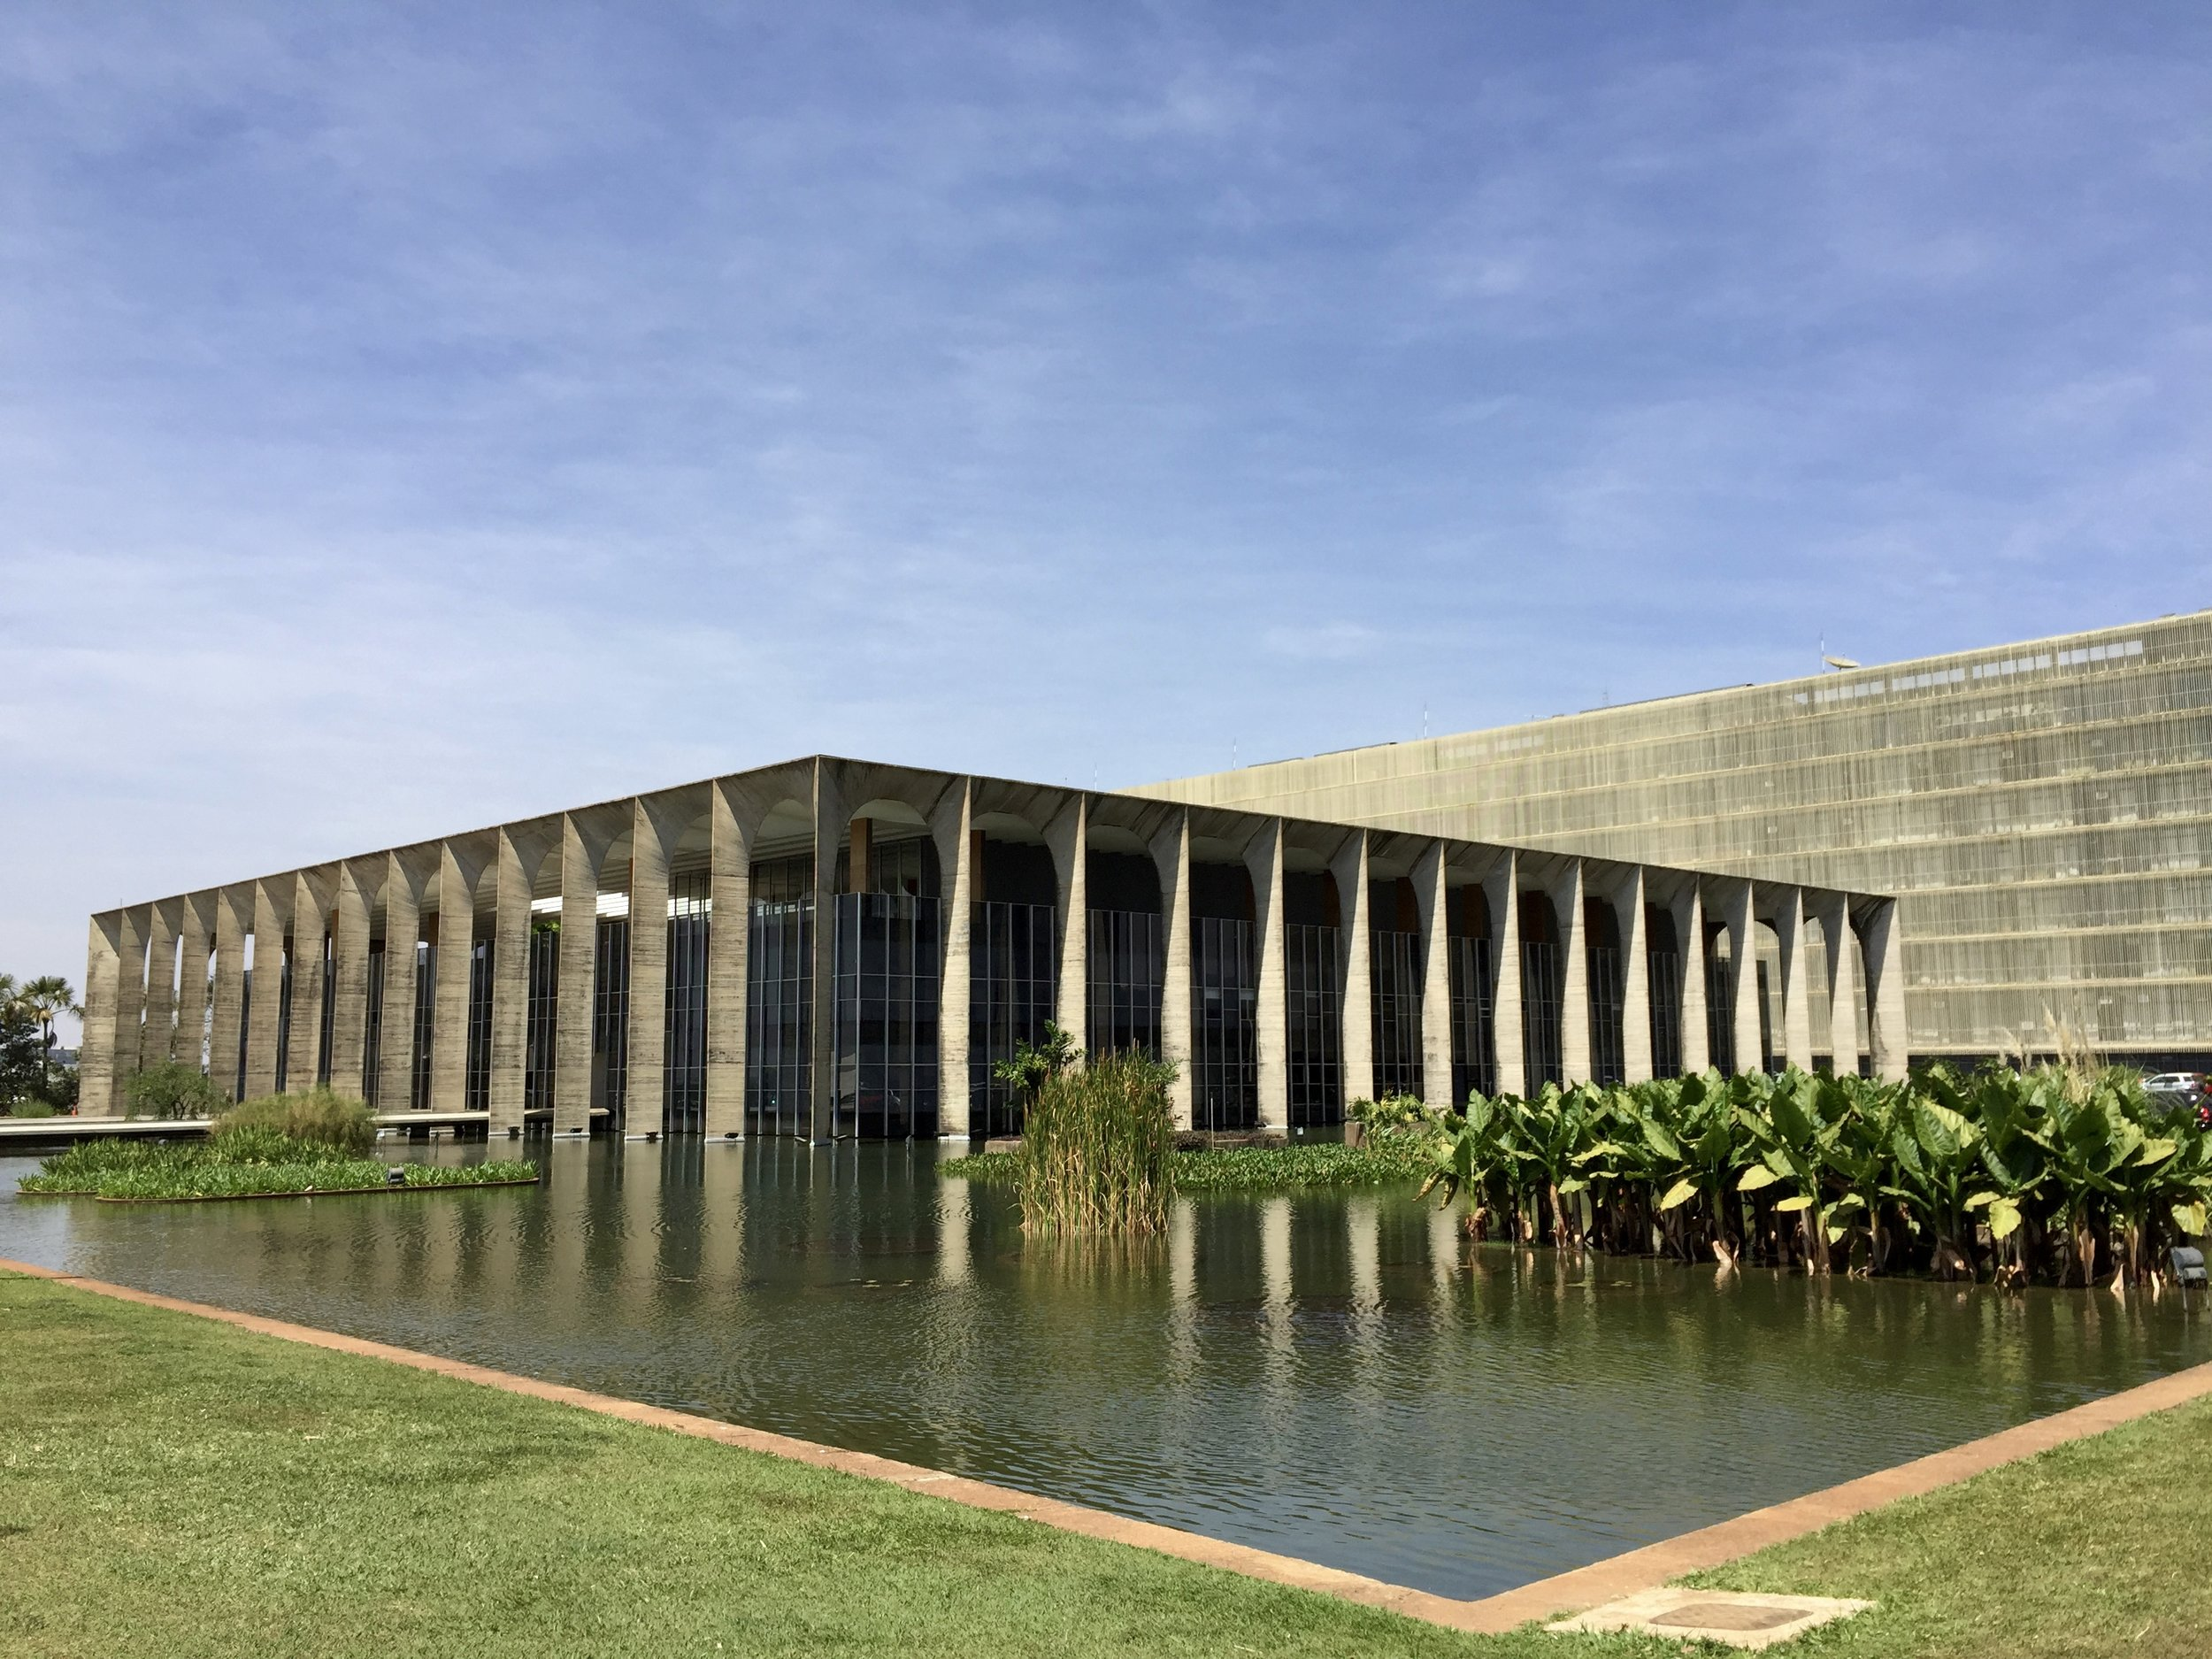 Itamaraty Palace (Ministry of Foreign Affairs, Brazil), design by Oscar Niemeyer